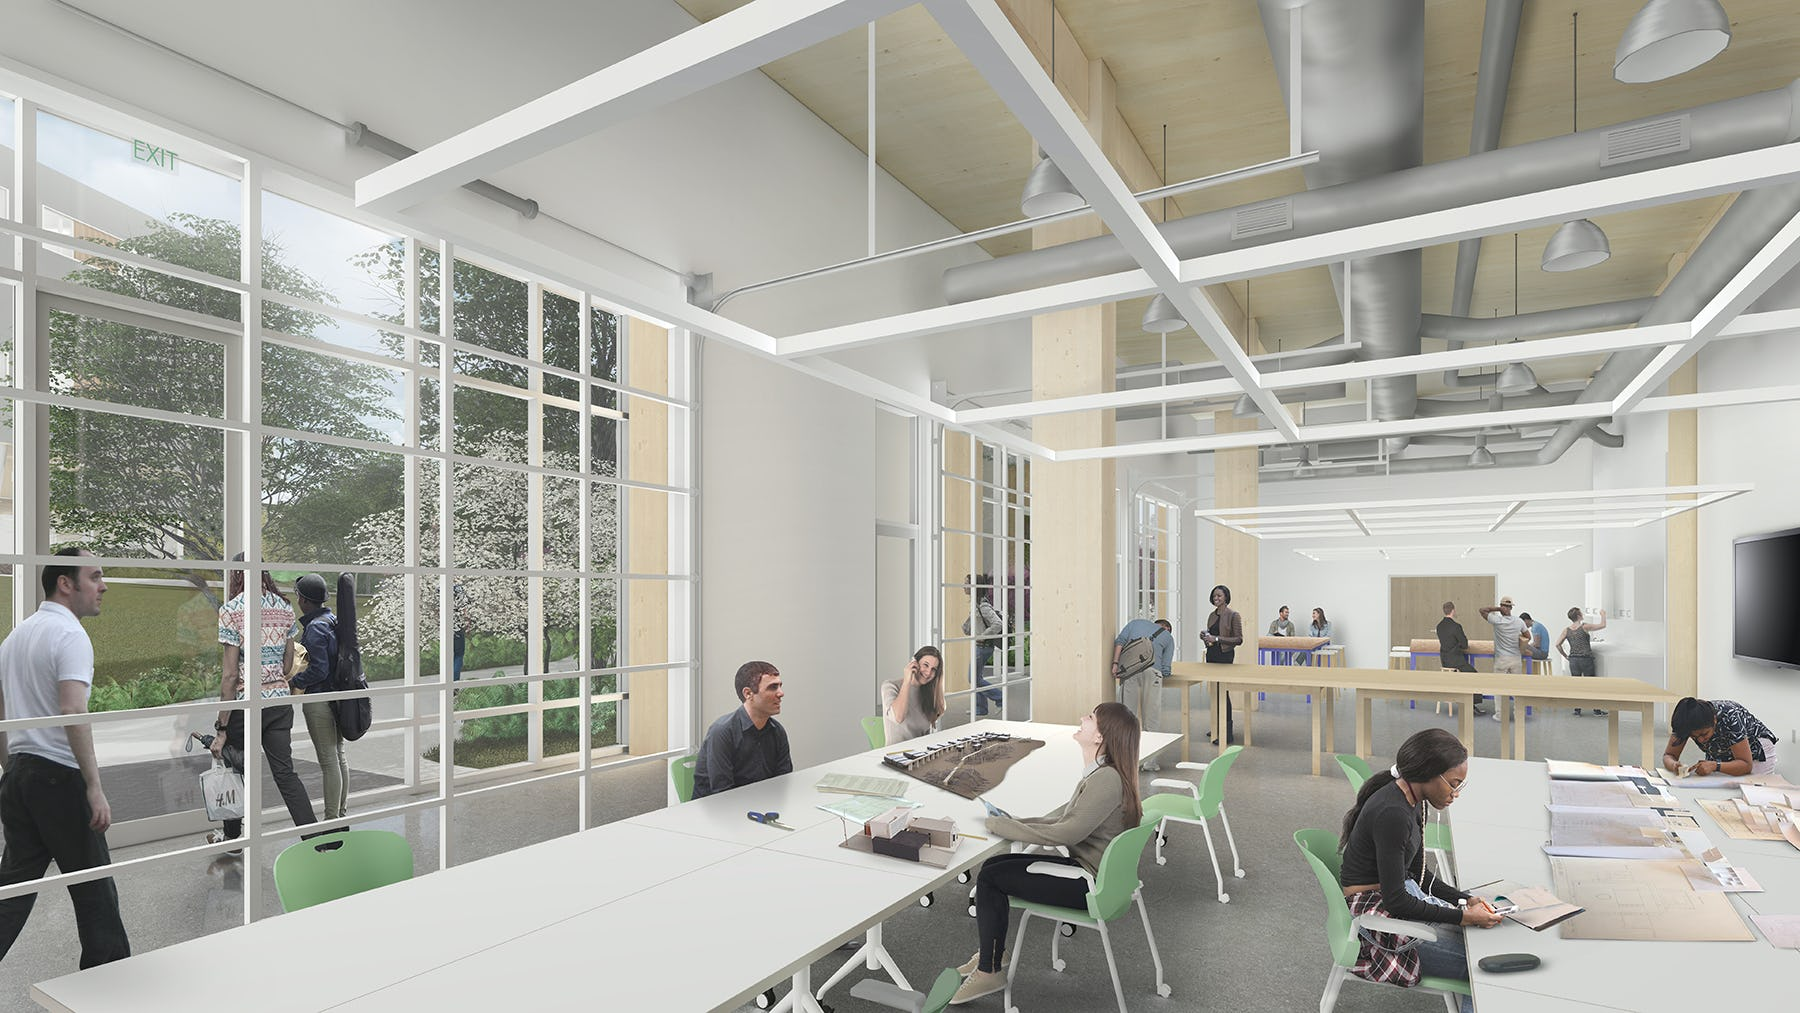 Uasdh rendering llc studio low res